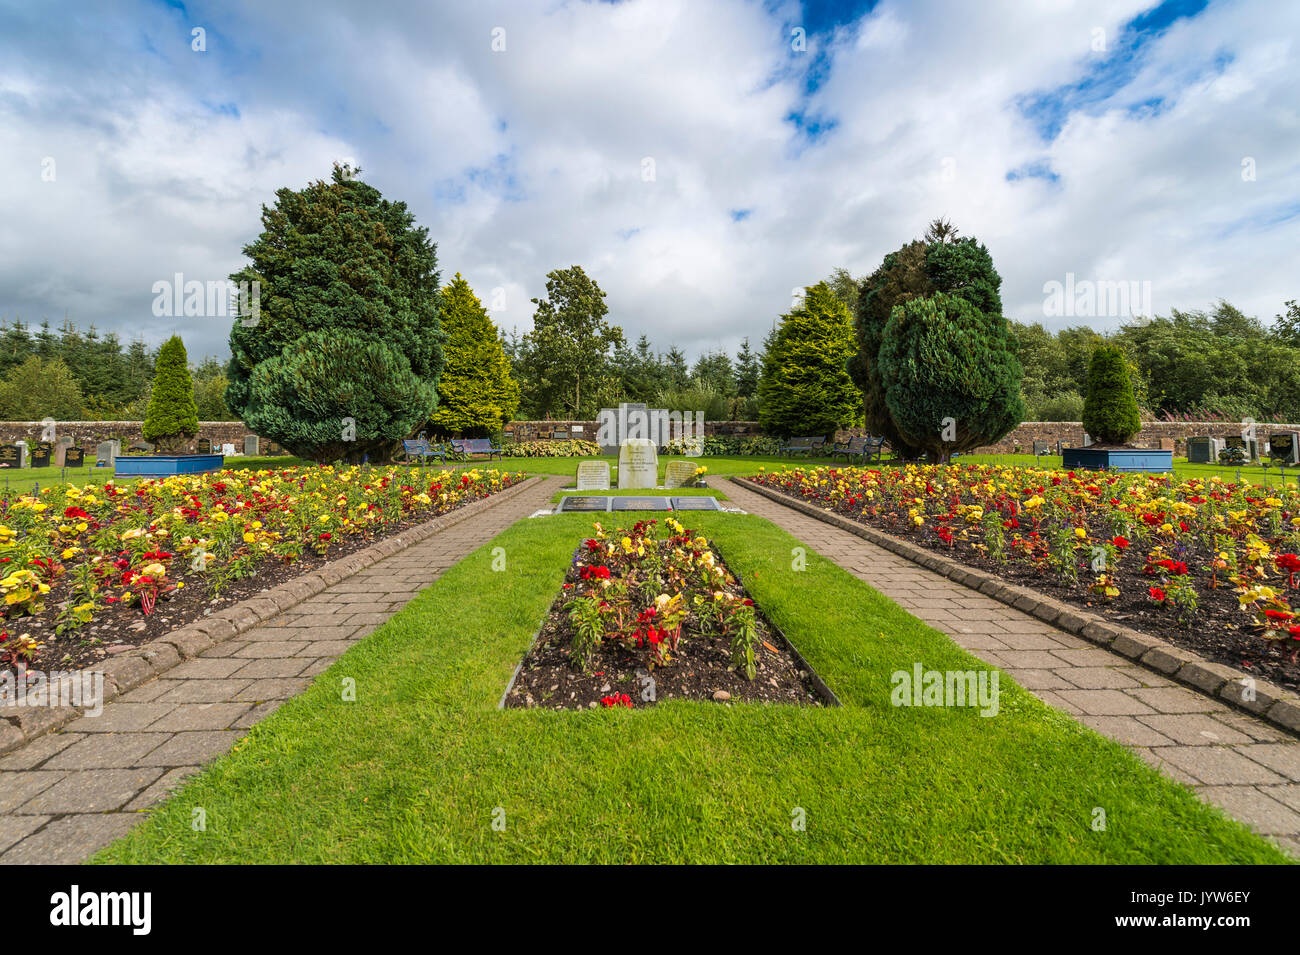 Lockerbie, Scotland, UK - August 19, 2017: The garden of remembrance for the victims of the Lockerbie air disaster in Dryfesdale cemetery, Lockerbie.  - Stock Image